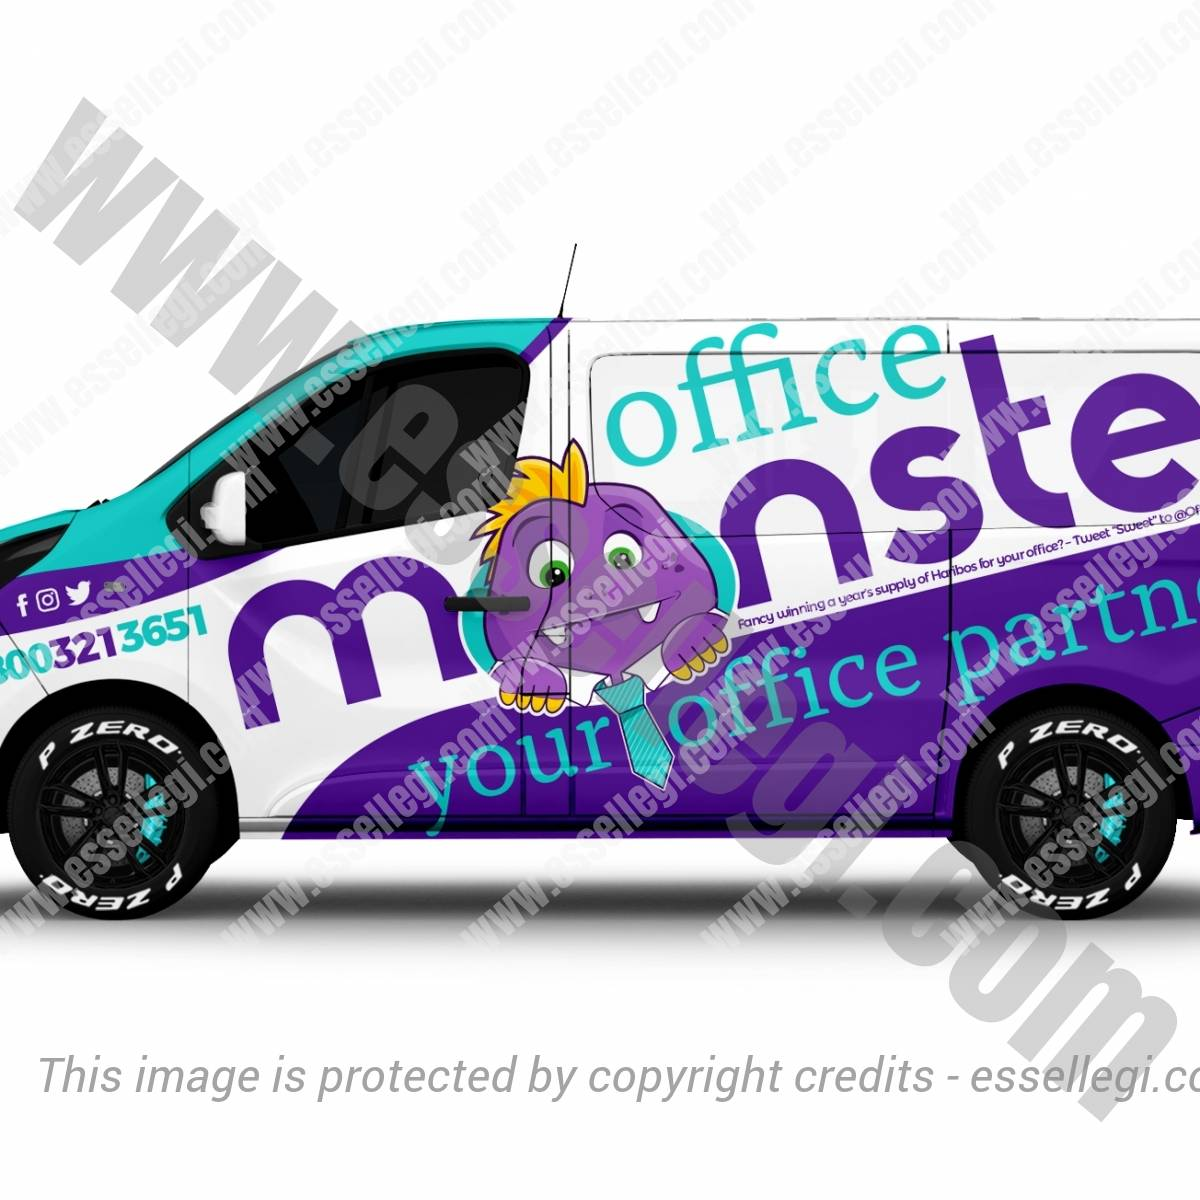 OFFICE MONSTER | VAN WRAP DESIGN 🇬🇧